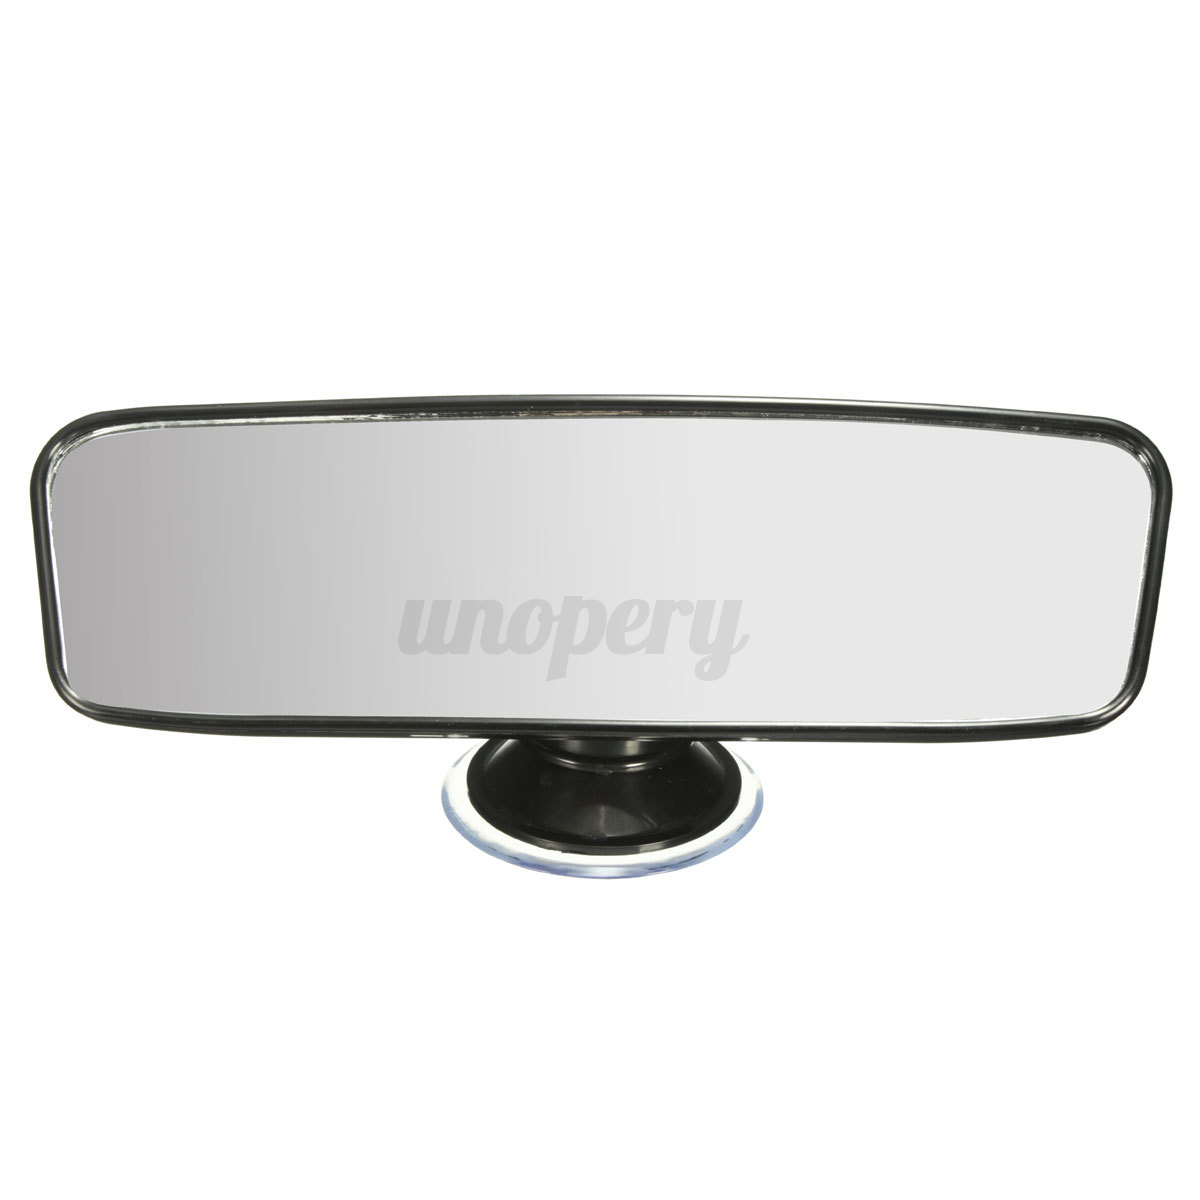 universal 200mm car truck wide flat interior rear view mirror suction rearview ebay. Black Bedroom Furniture Sets. Home Design Ideas